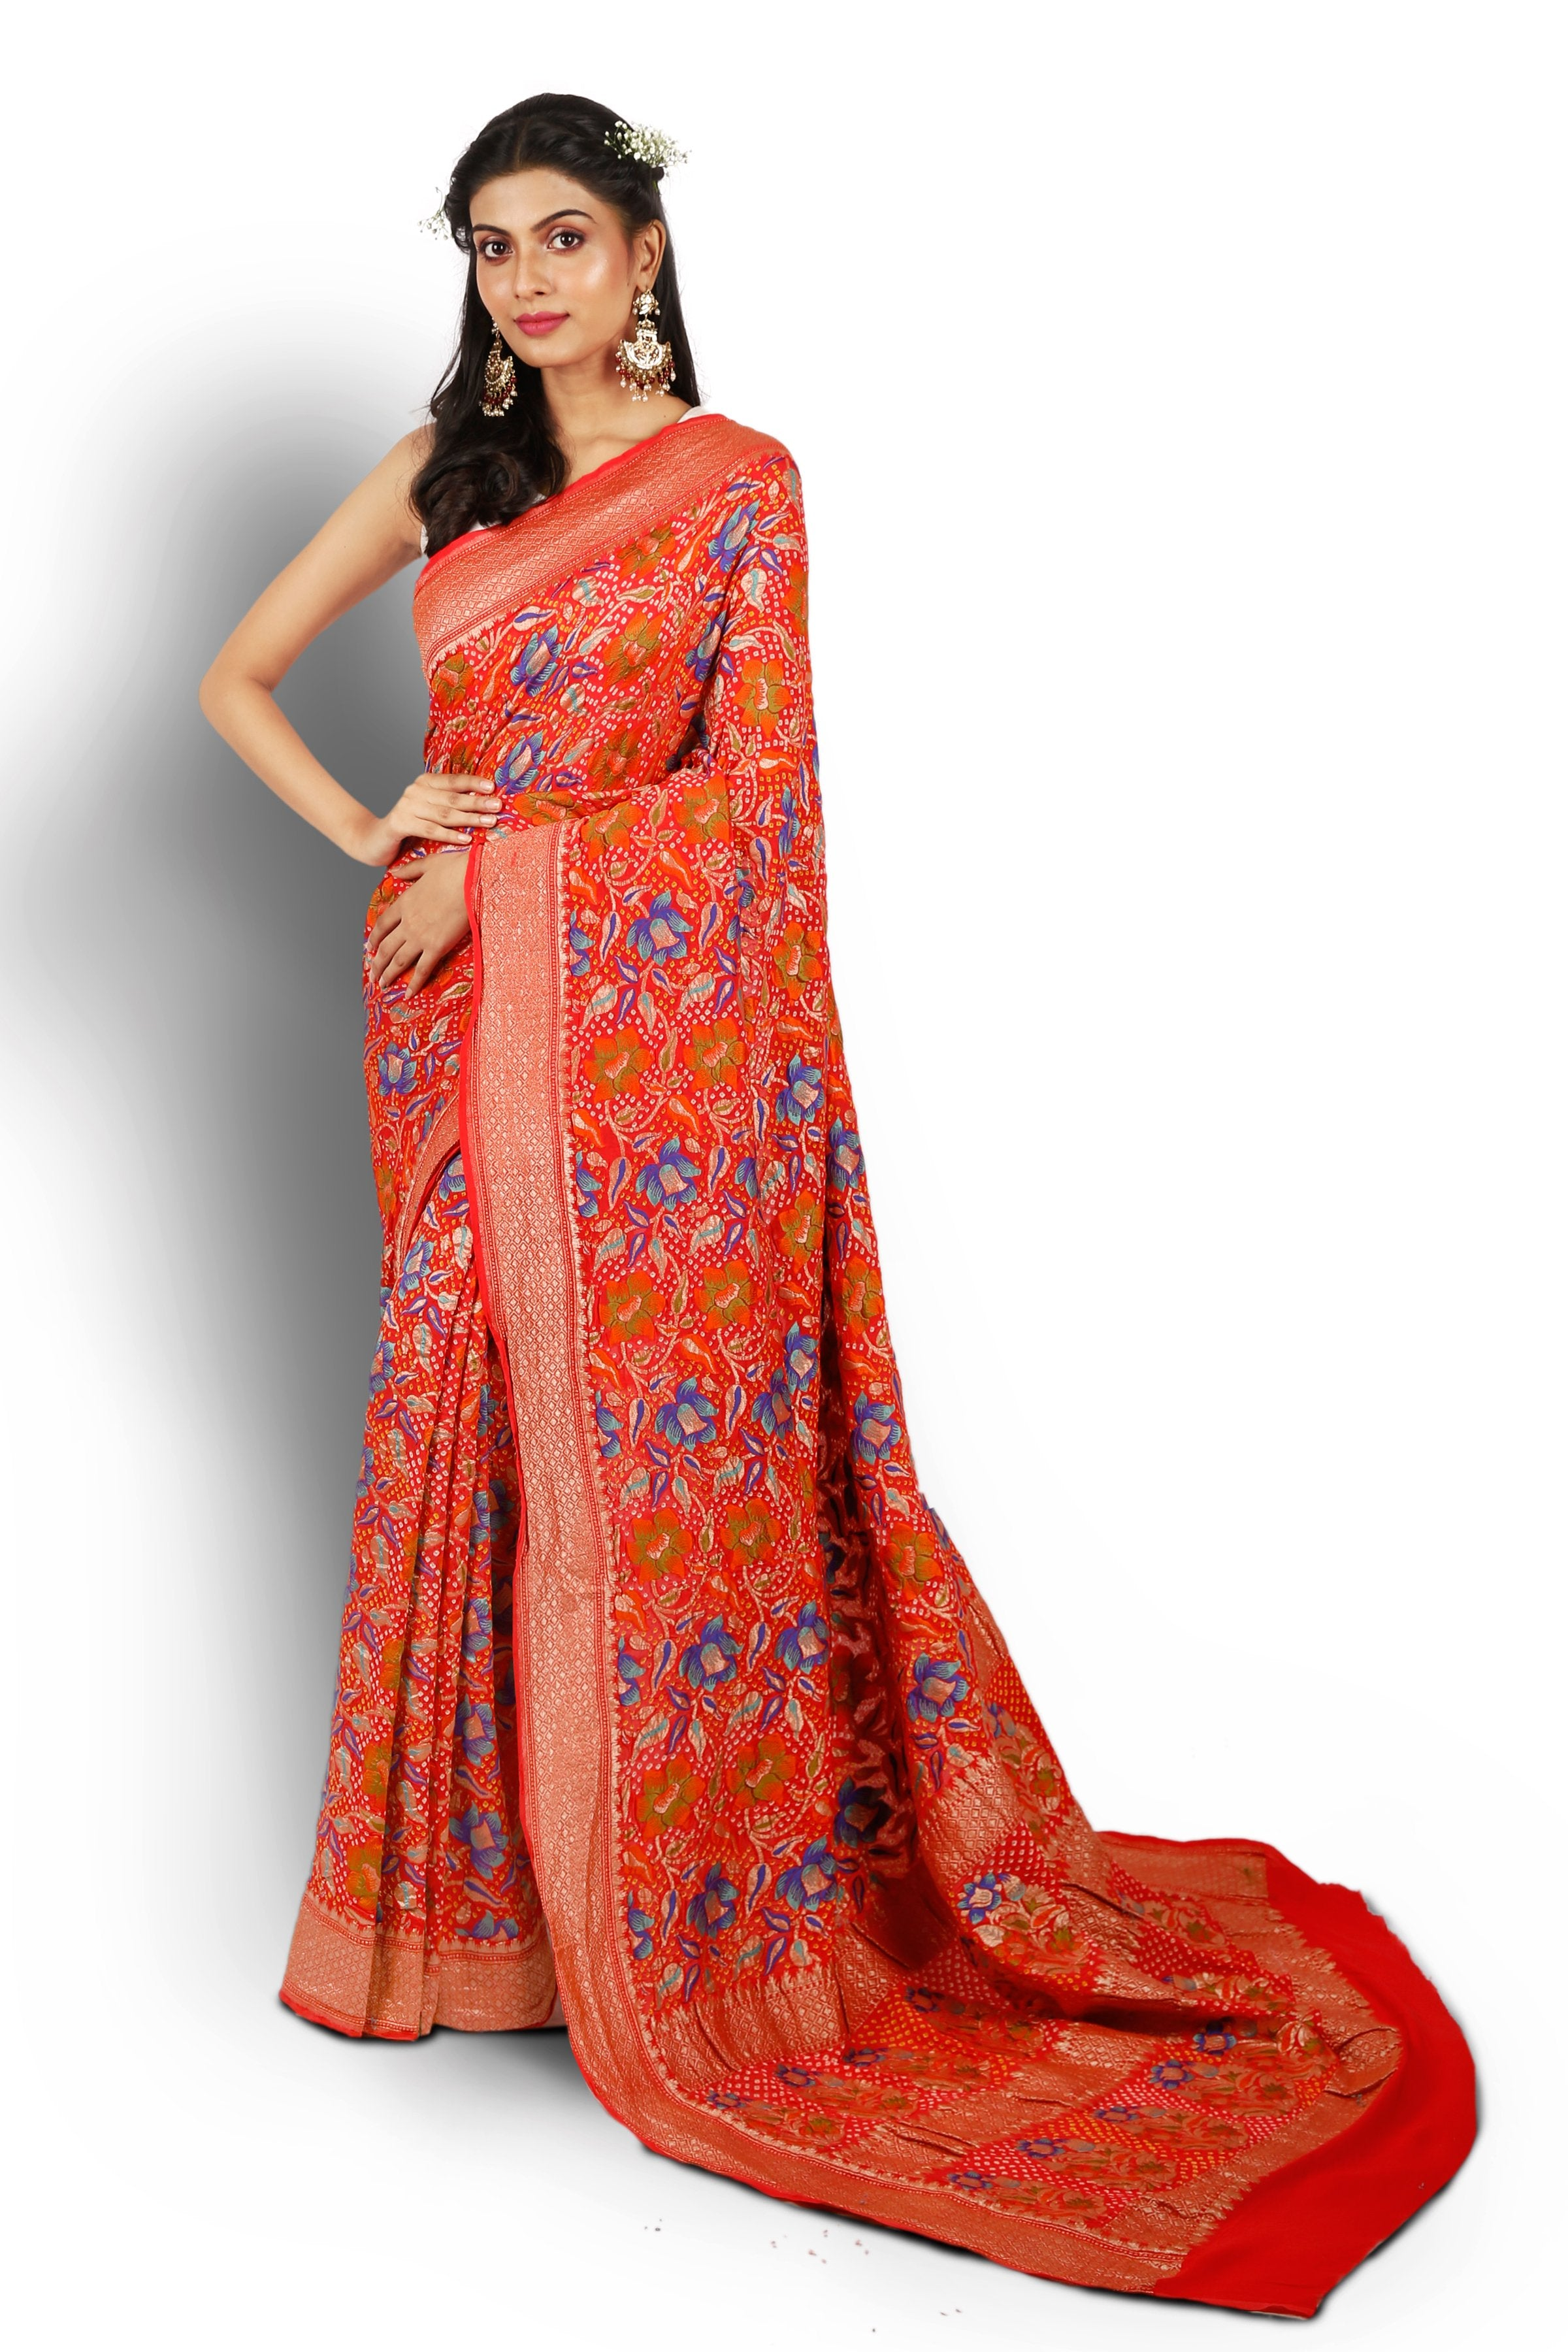 Red Benarasi Bandhani Saree with Meenakari detailing